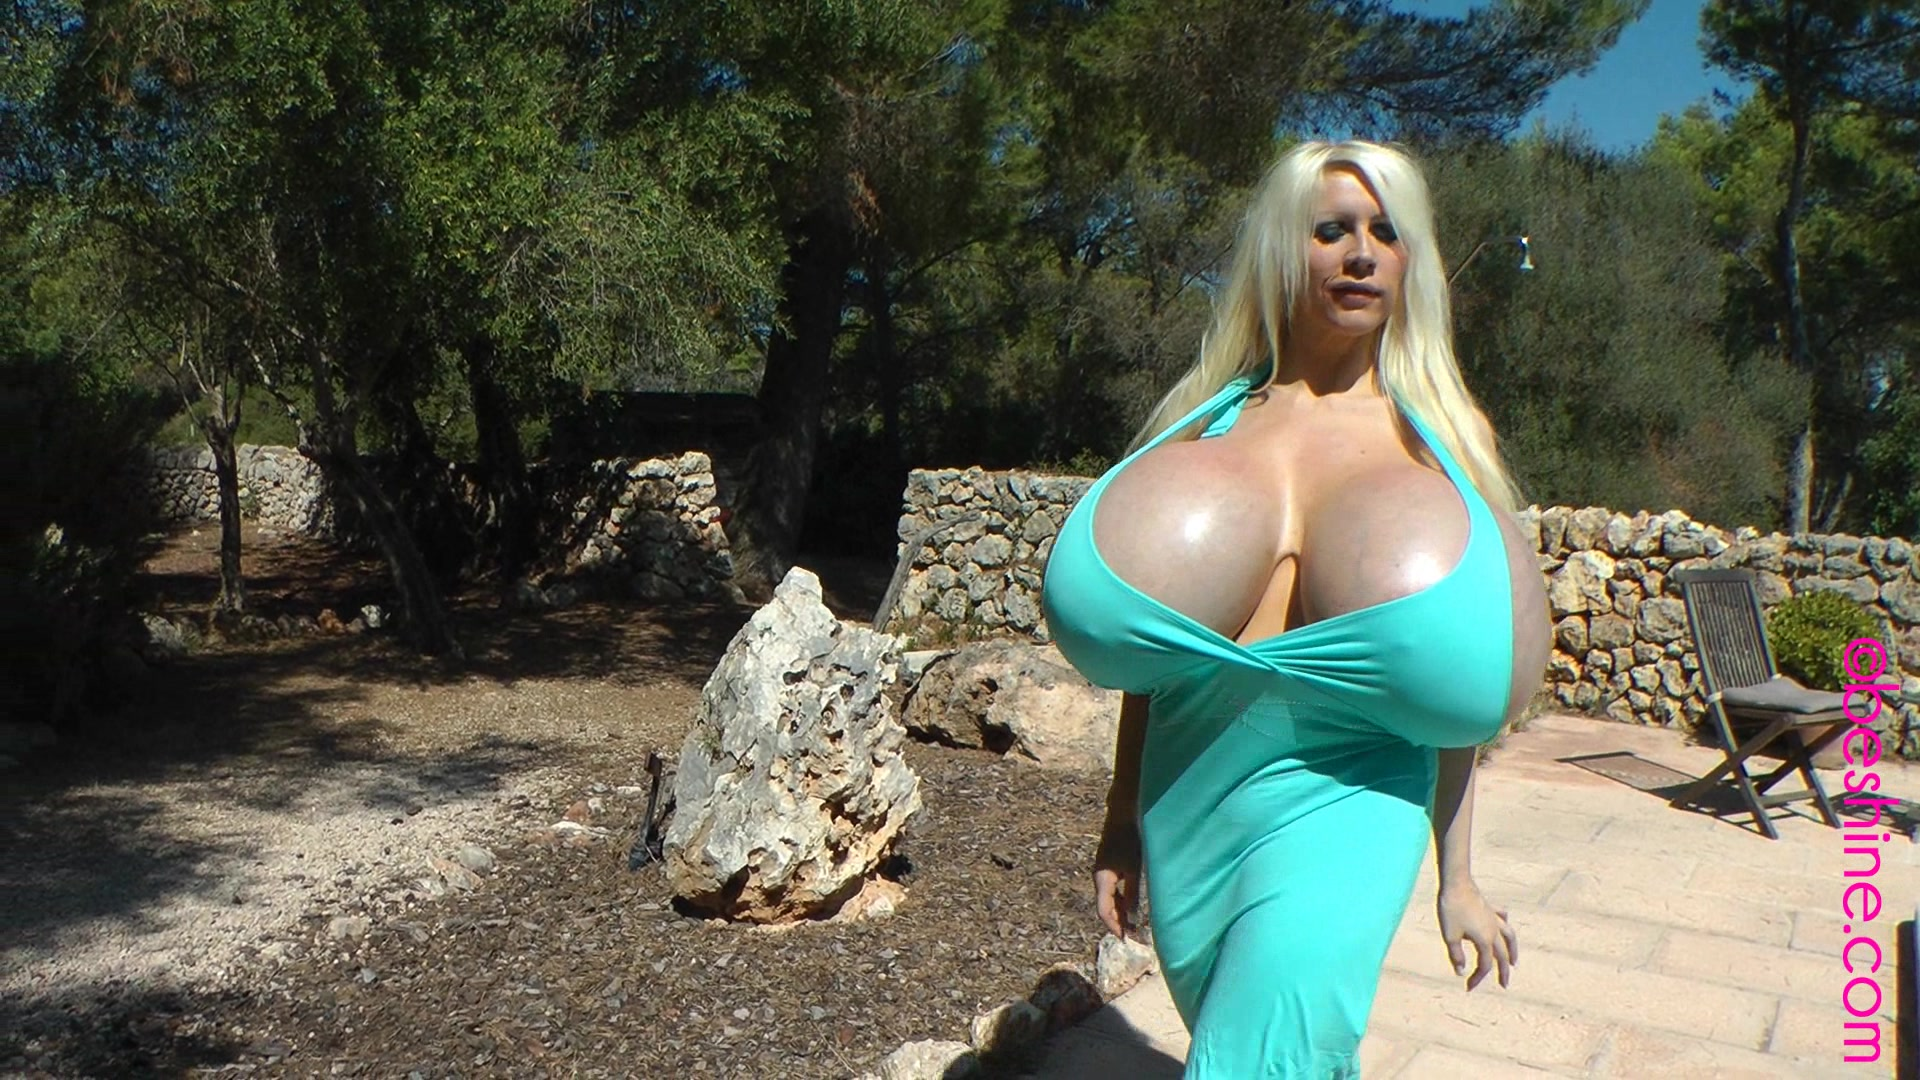 Beshine - Sexy tits in summer dress 52391 - Bigtittytube - Just super huge monsterboobs